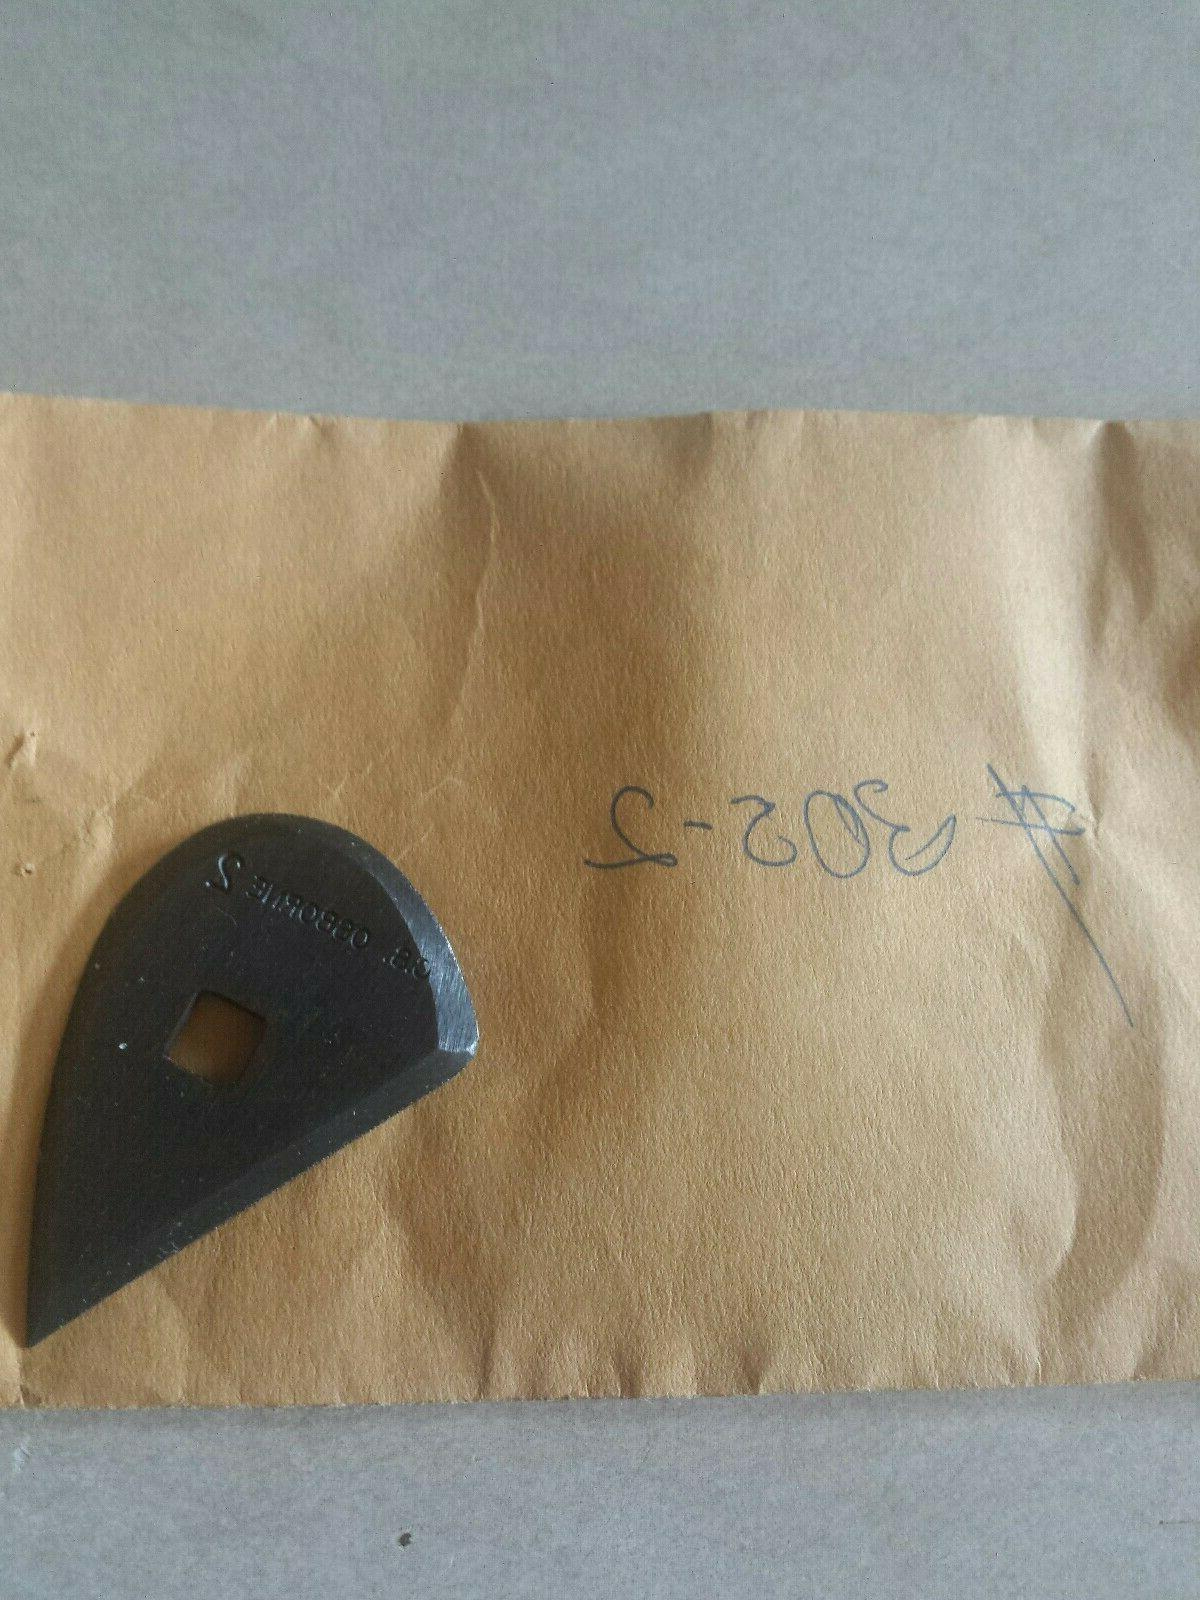 C Osborne 305-2 Replacement Oval to use with 305, 207 handle